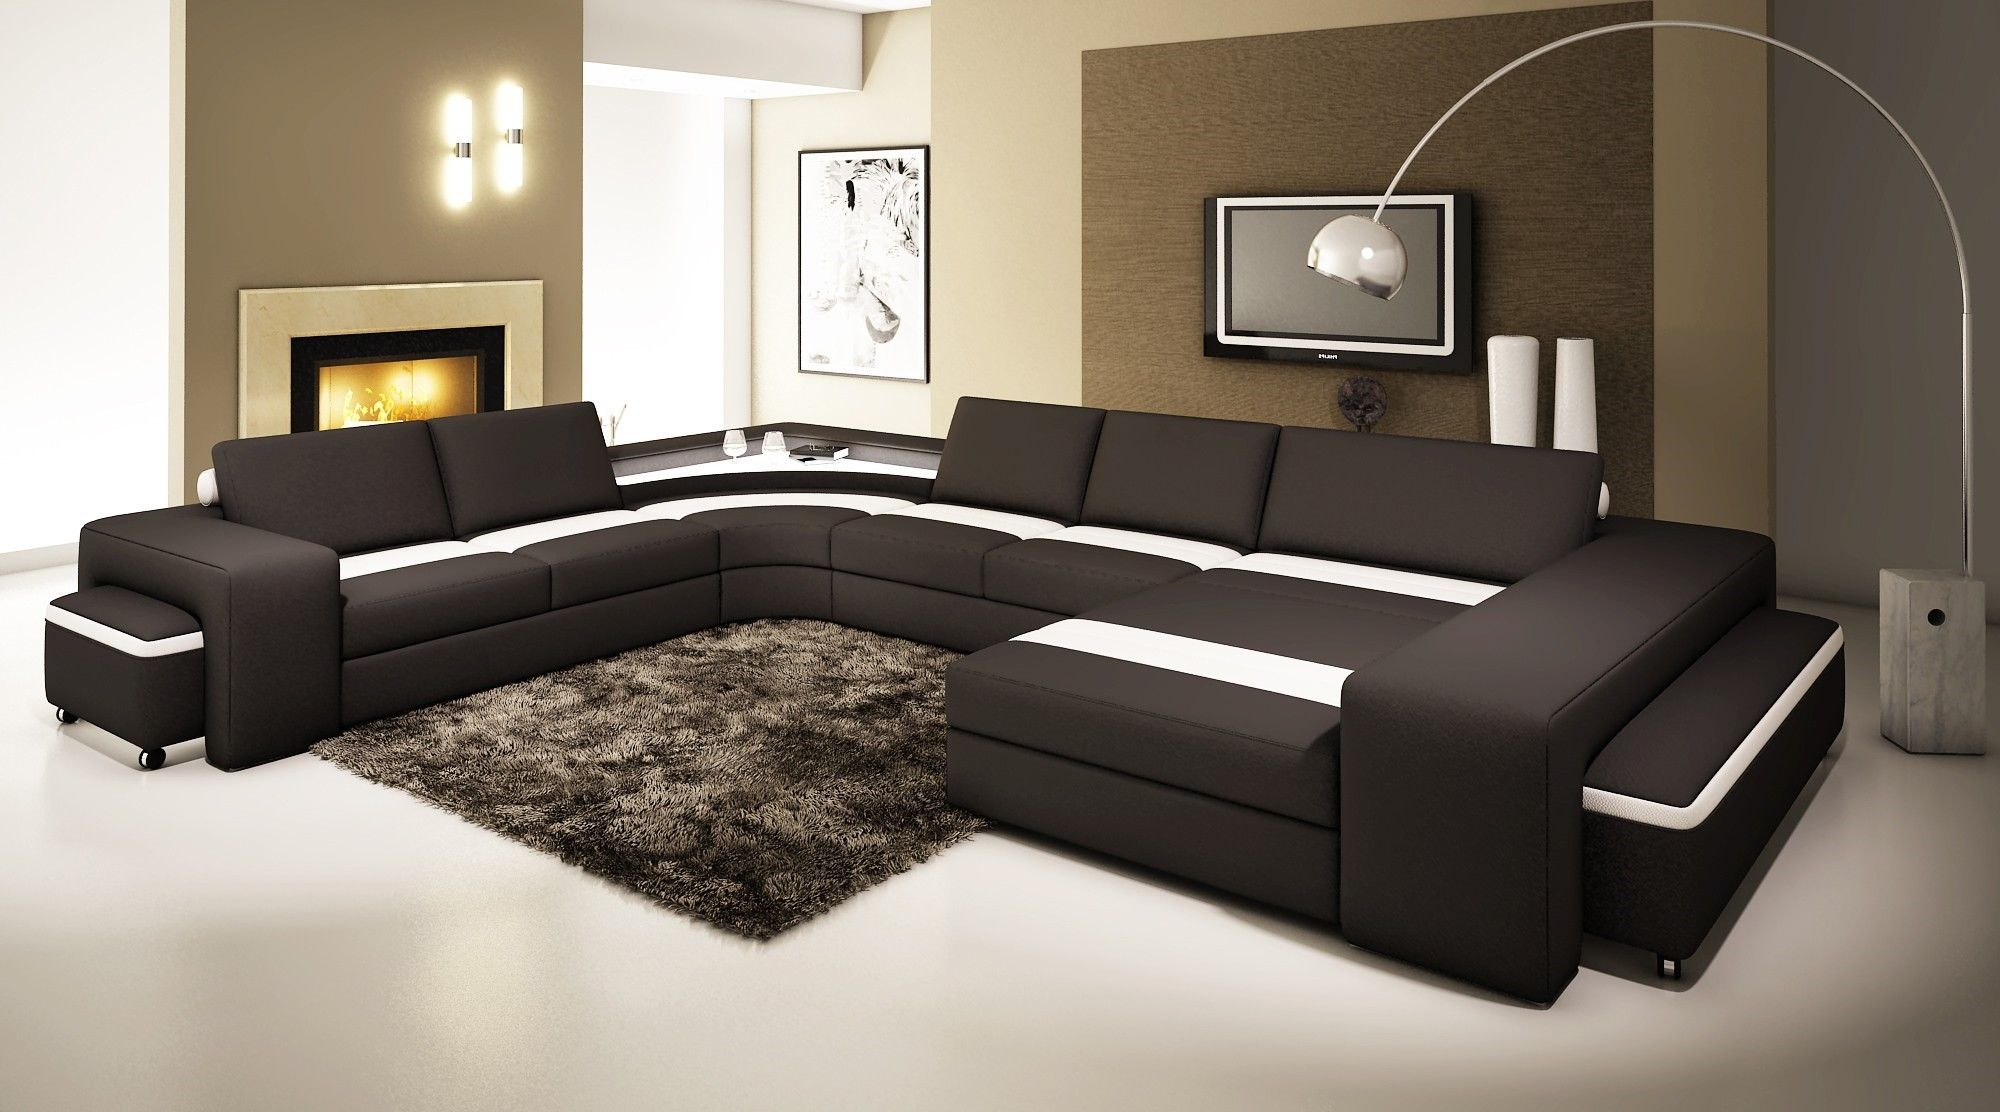 amazing tufted sofa sectional ideas-Beautiful Tufted sofa Sectional Model